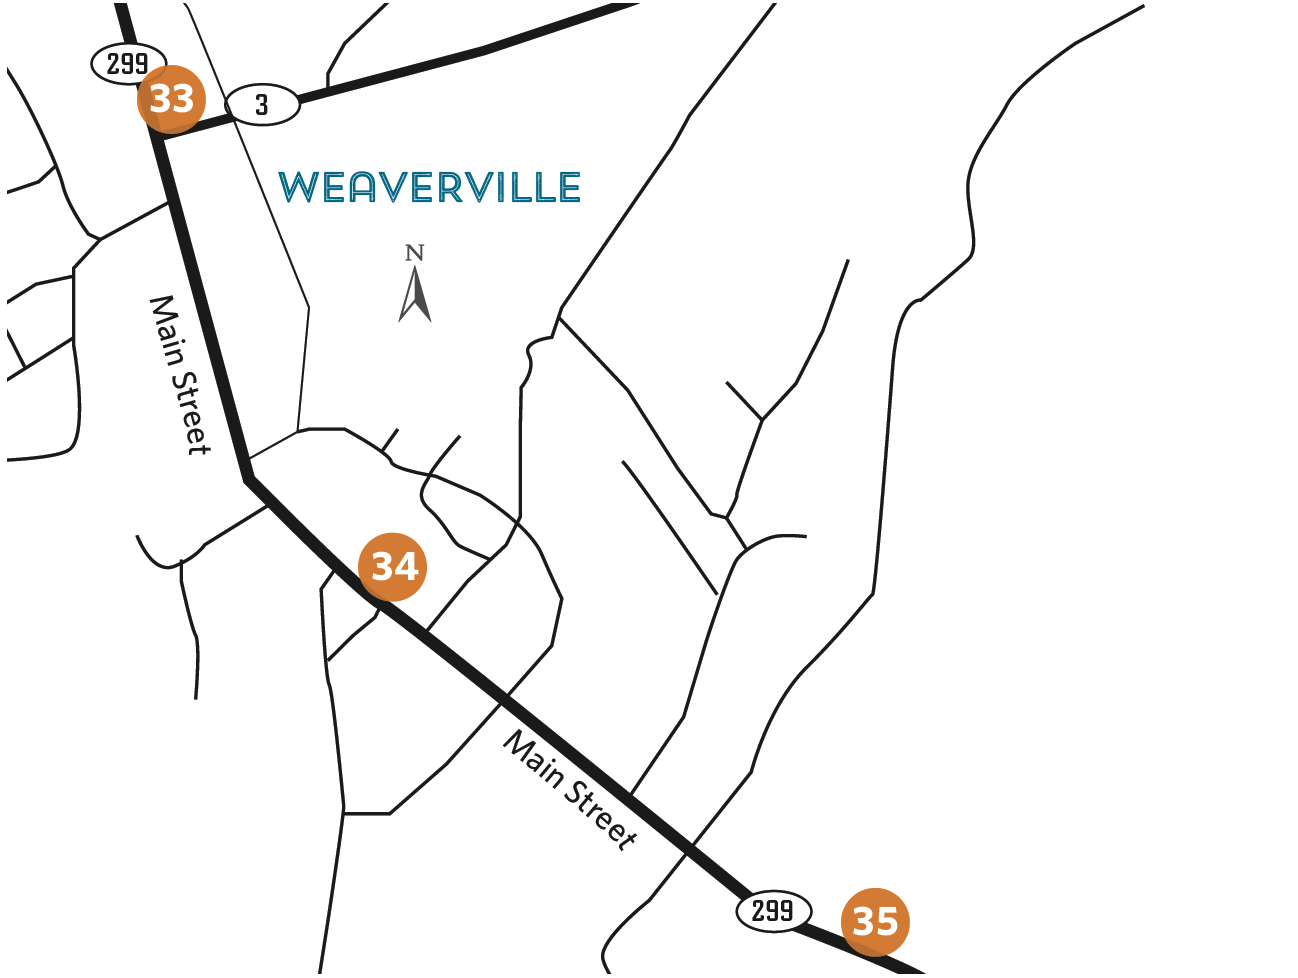 Location overview  - Weaverville